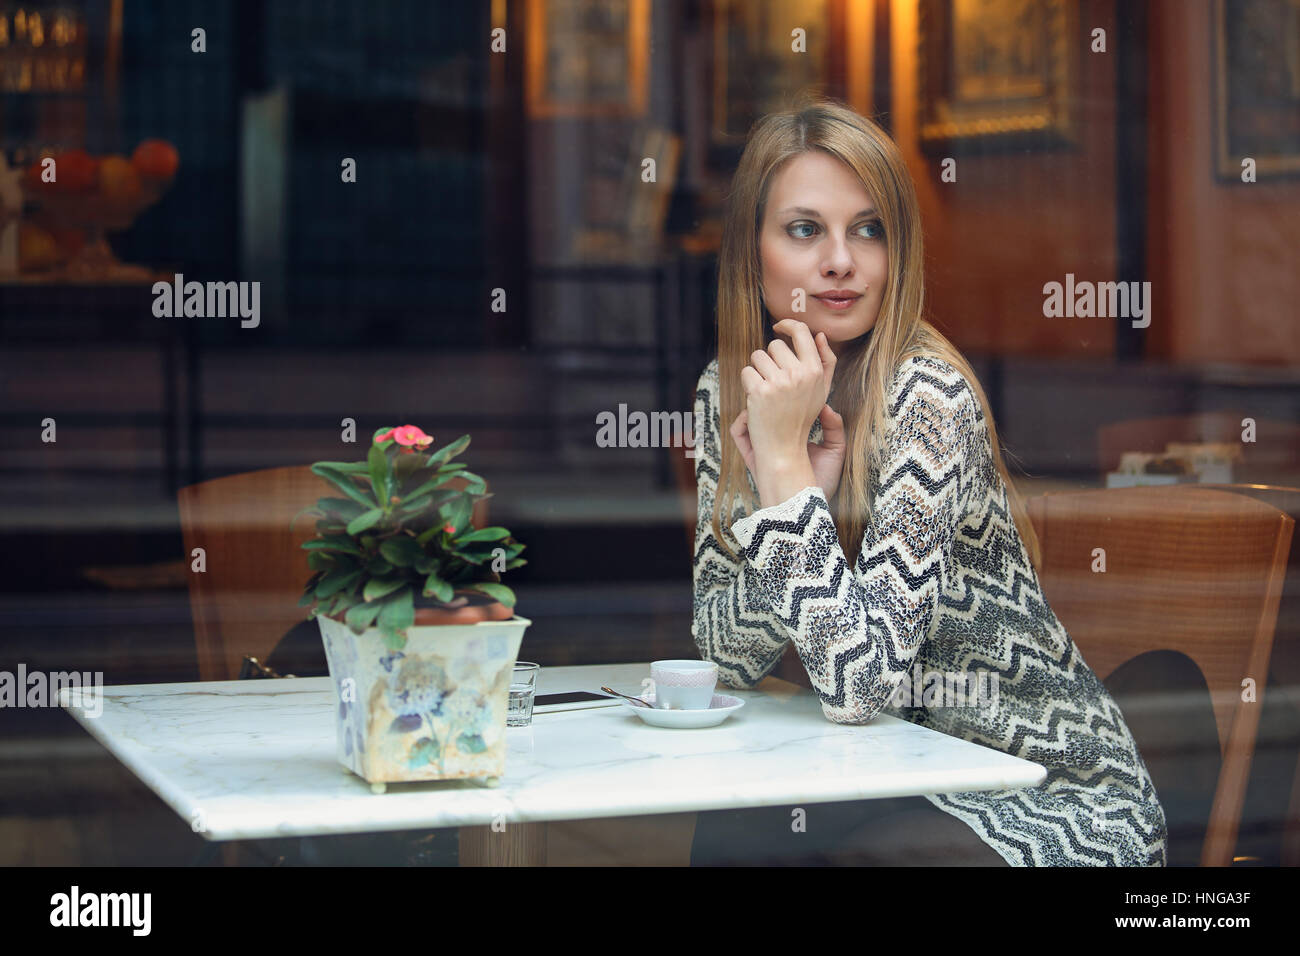 Young woman taking a break in elegant cafe. Urban lifestyle - Stock Image